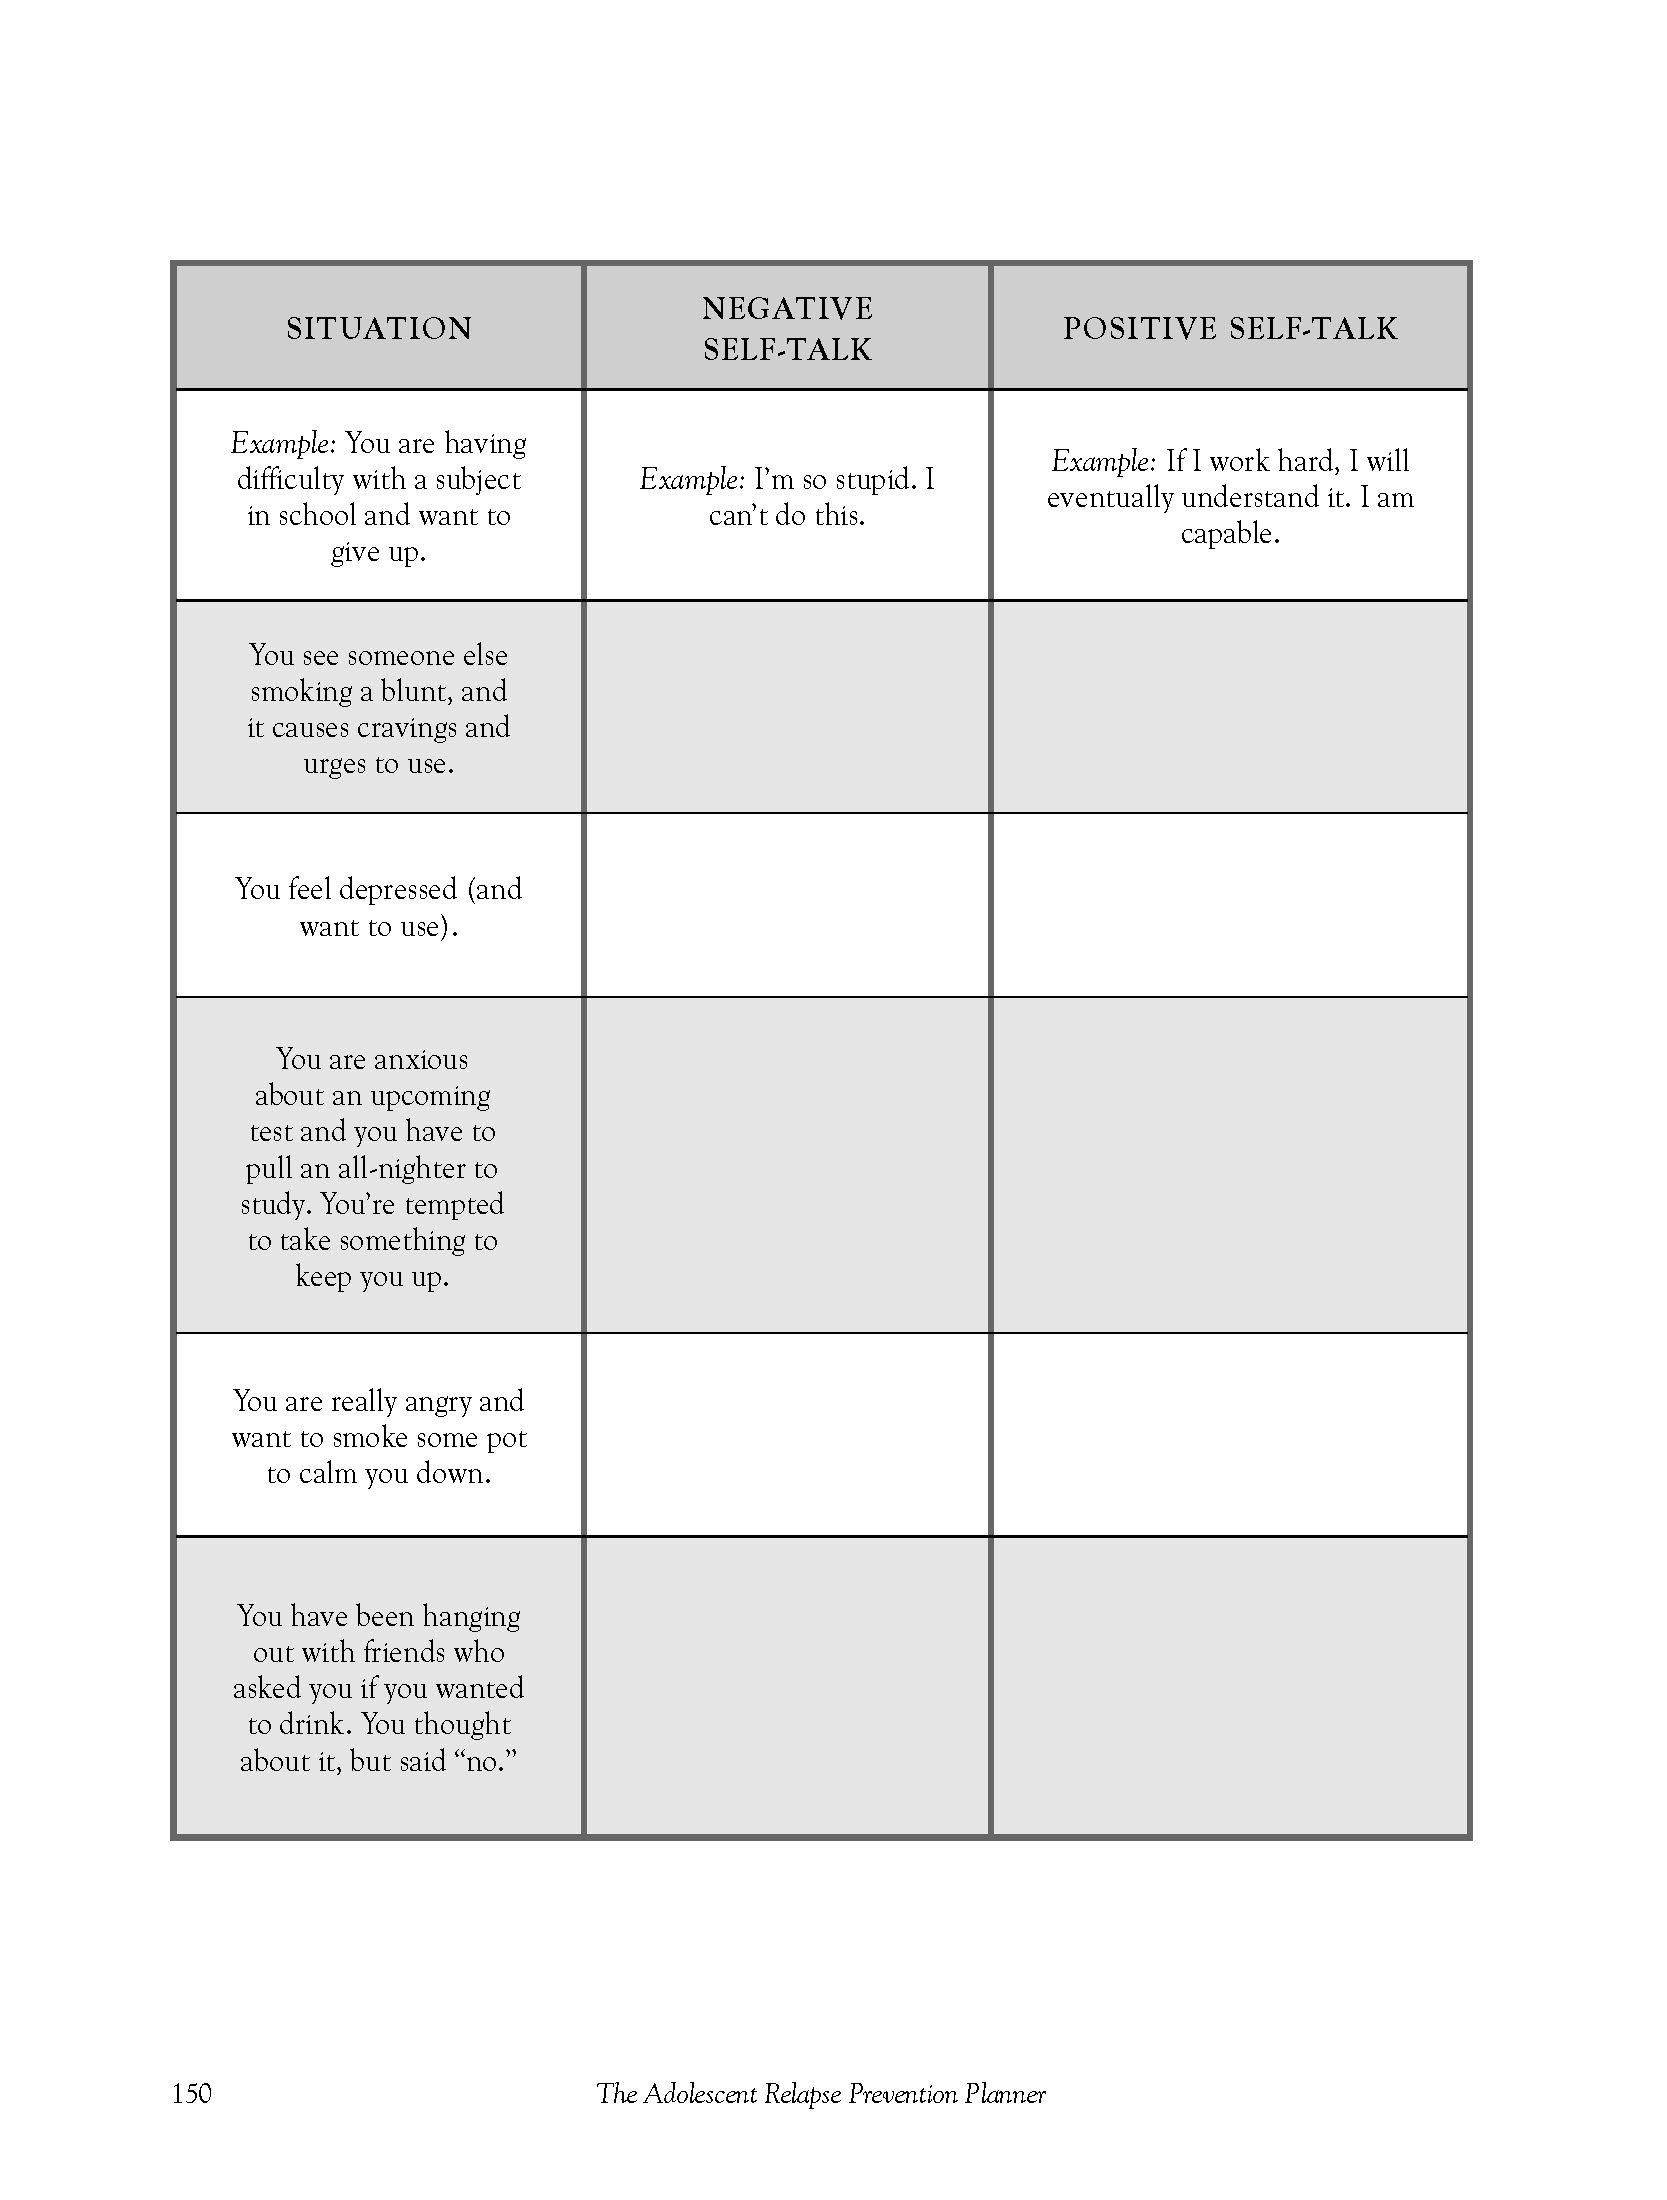 A Multi Use Exercise Worksheet On Self Talking Taken From